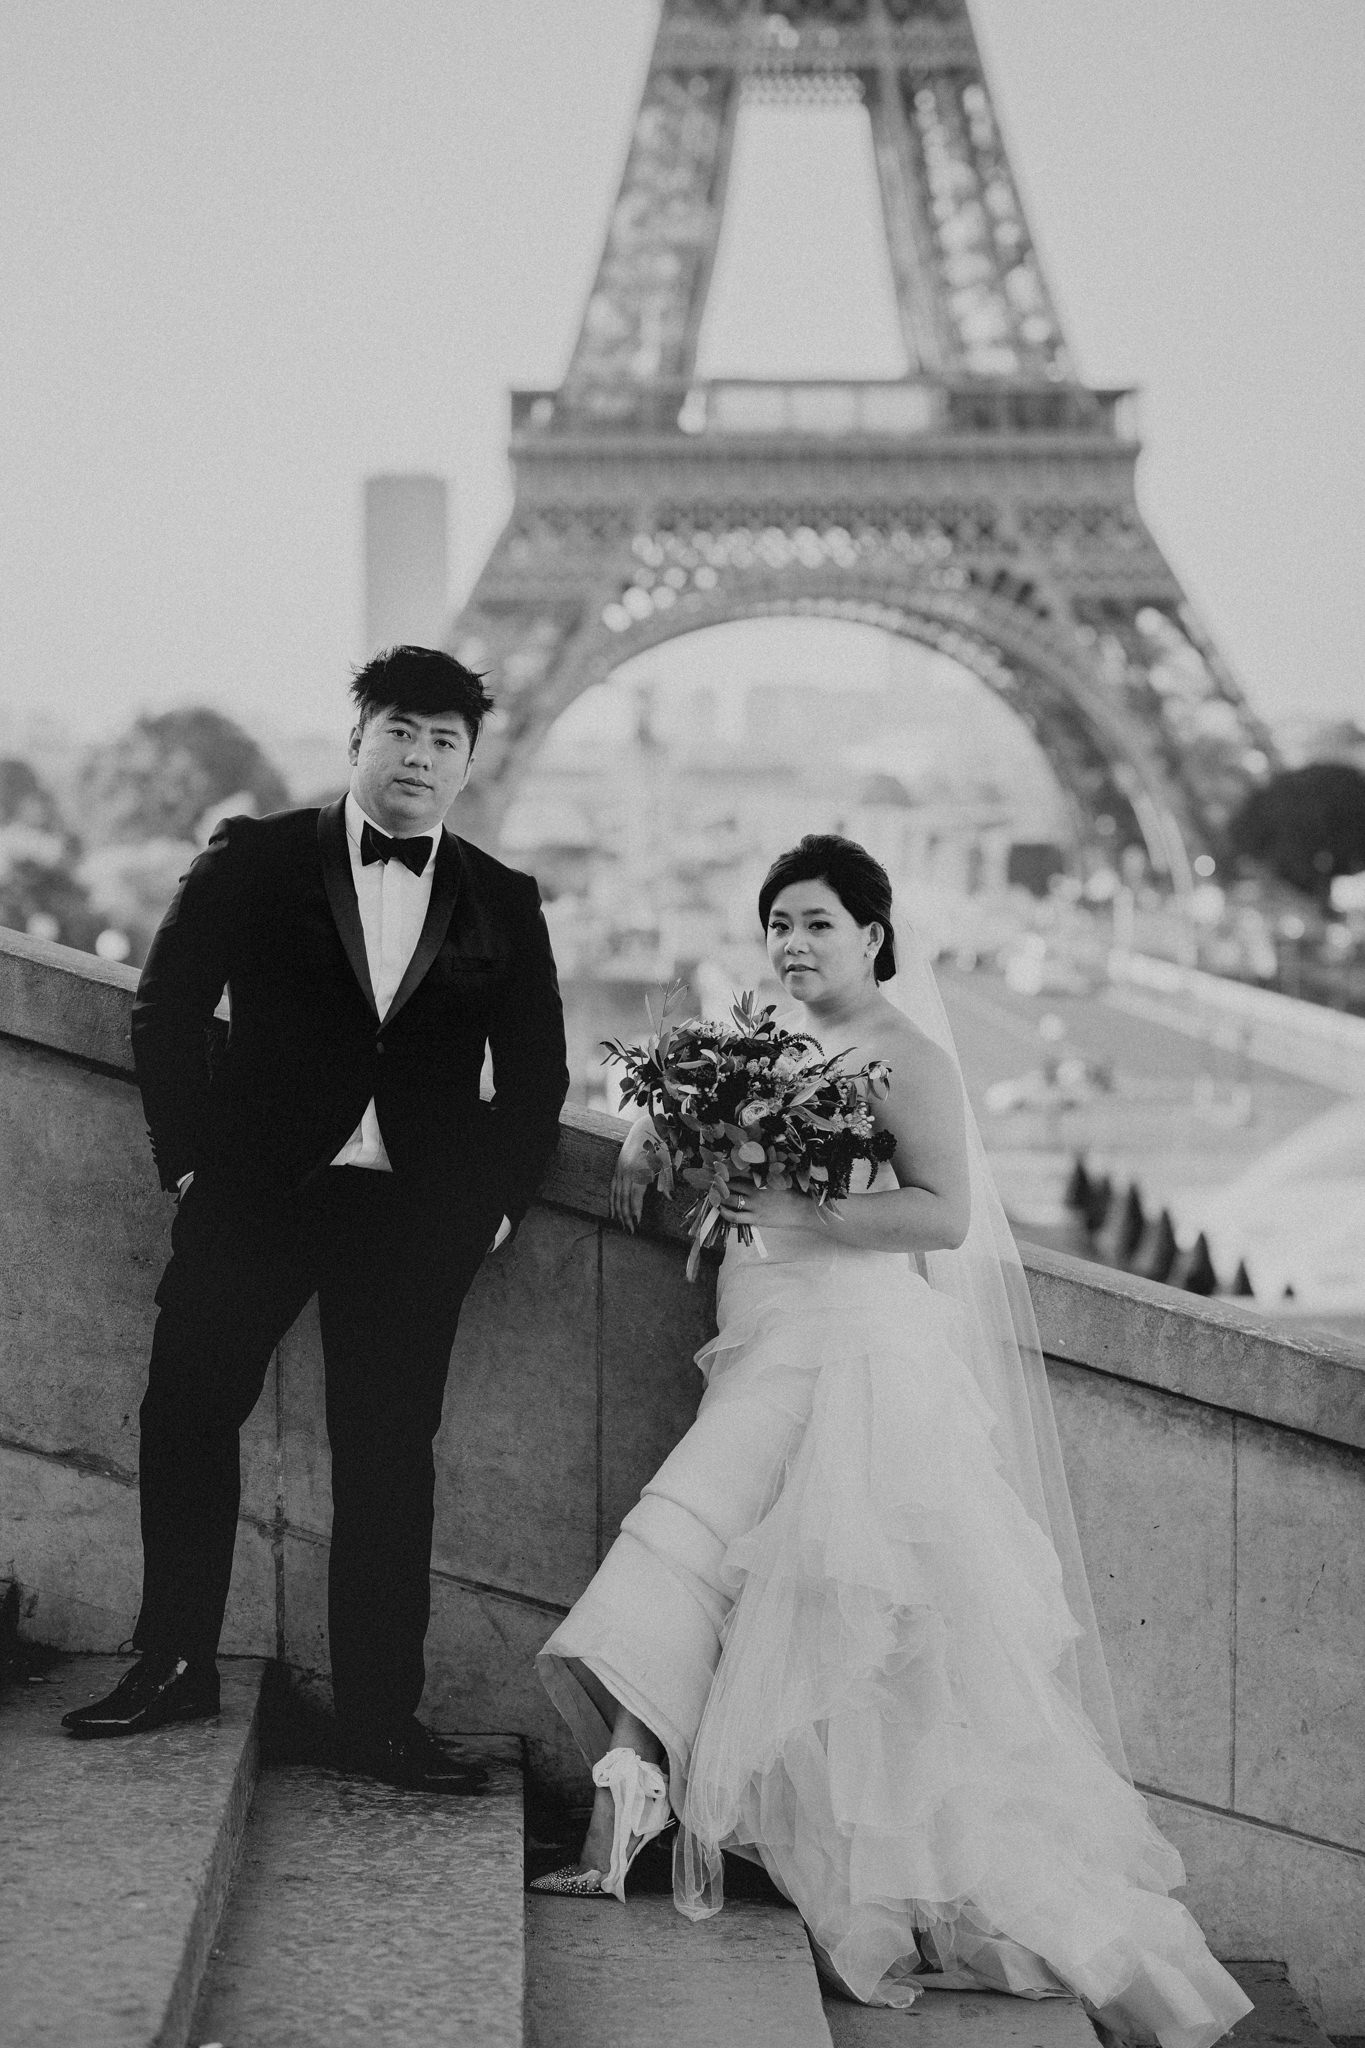 Asian bride and groom stand on steps in front of the Eiffel Tower.